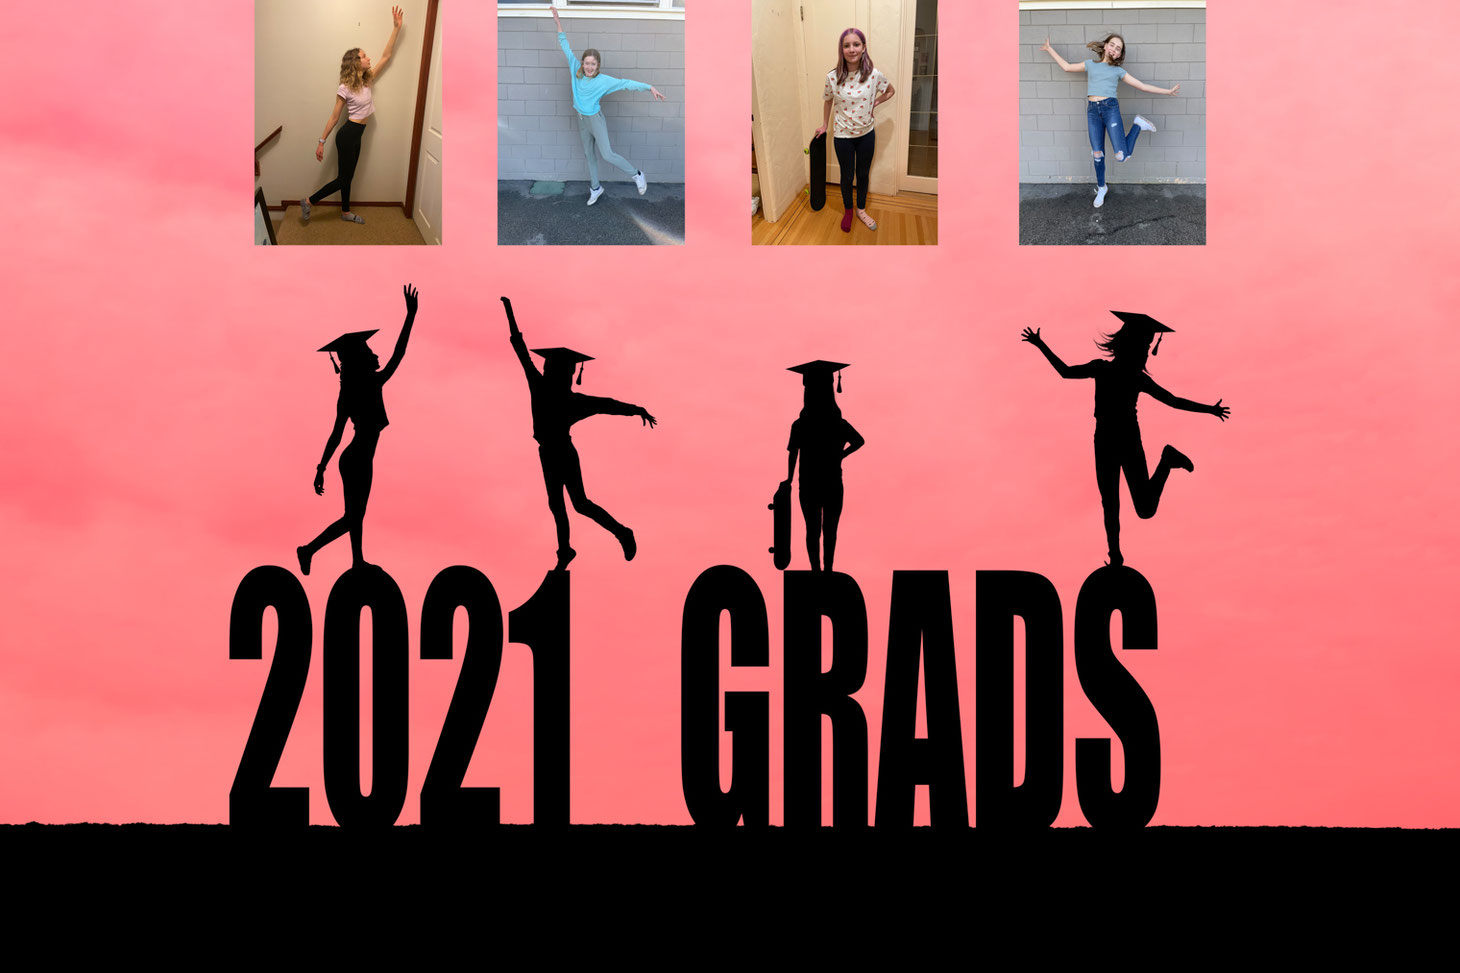 Silhouette of 4 girls in grad hats on top of letters reading 2021 GRADS with a pink sky